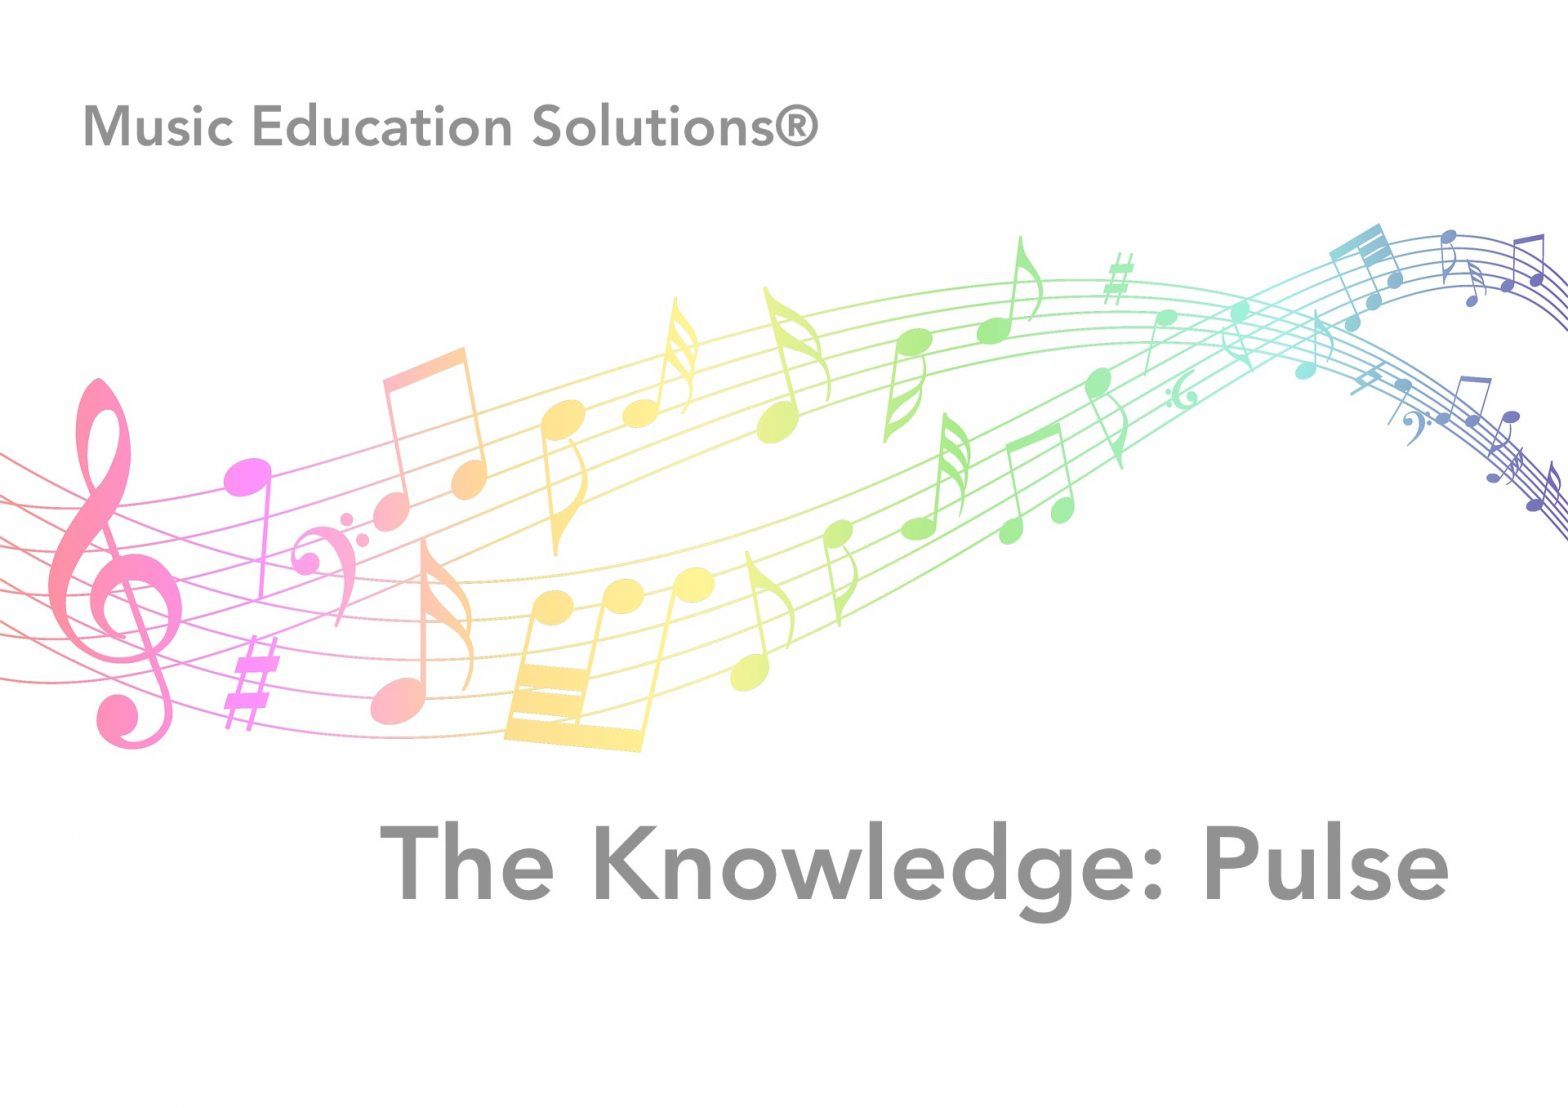 The Knowledge: Pulse Vocabulary